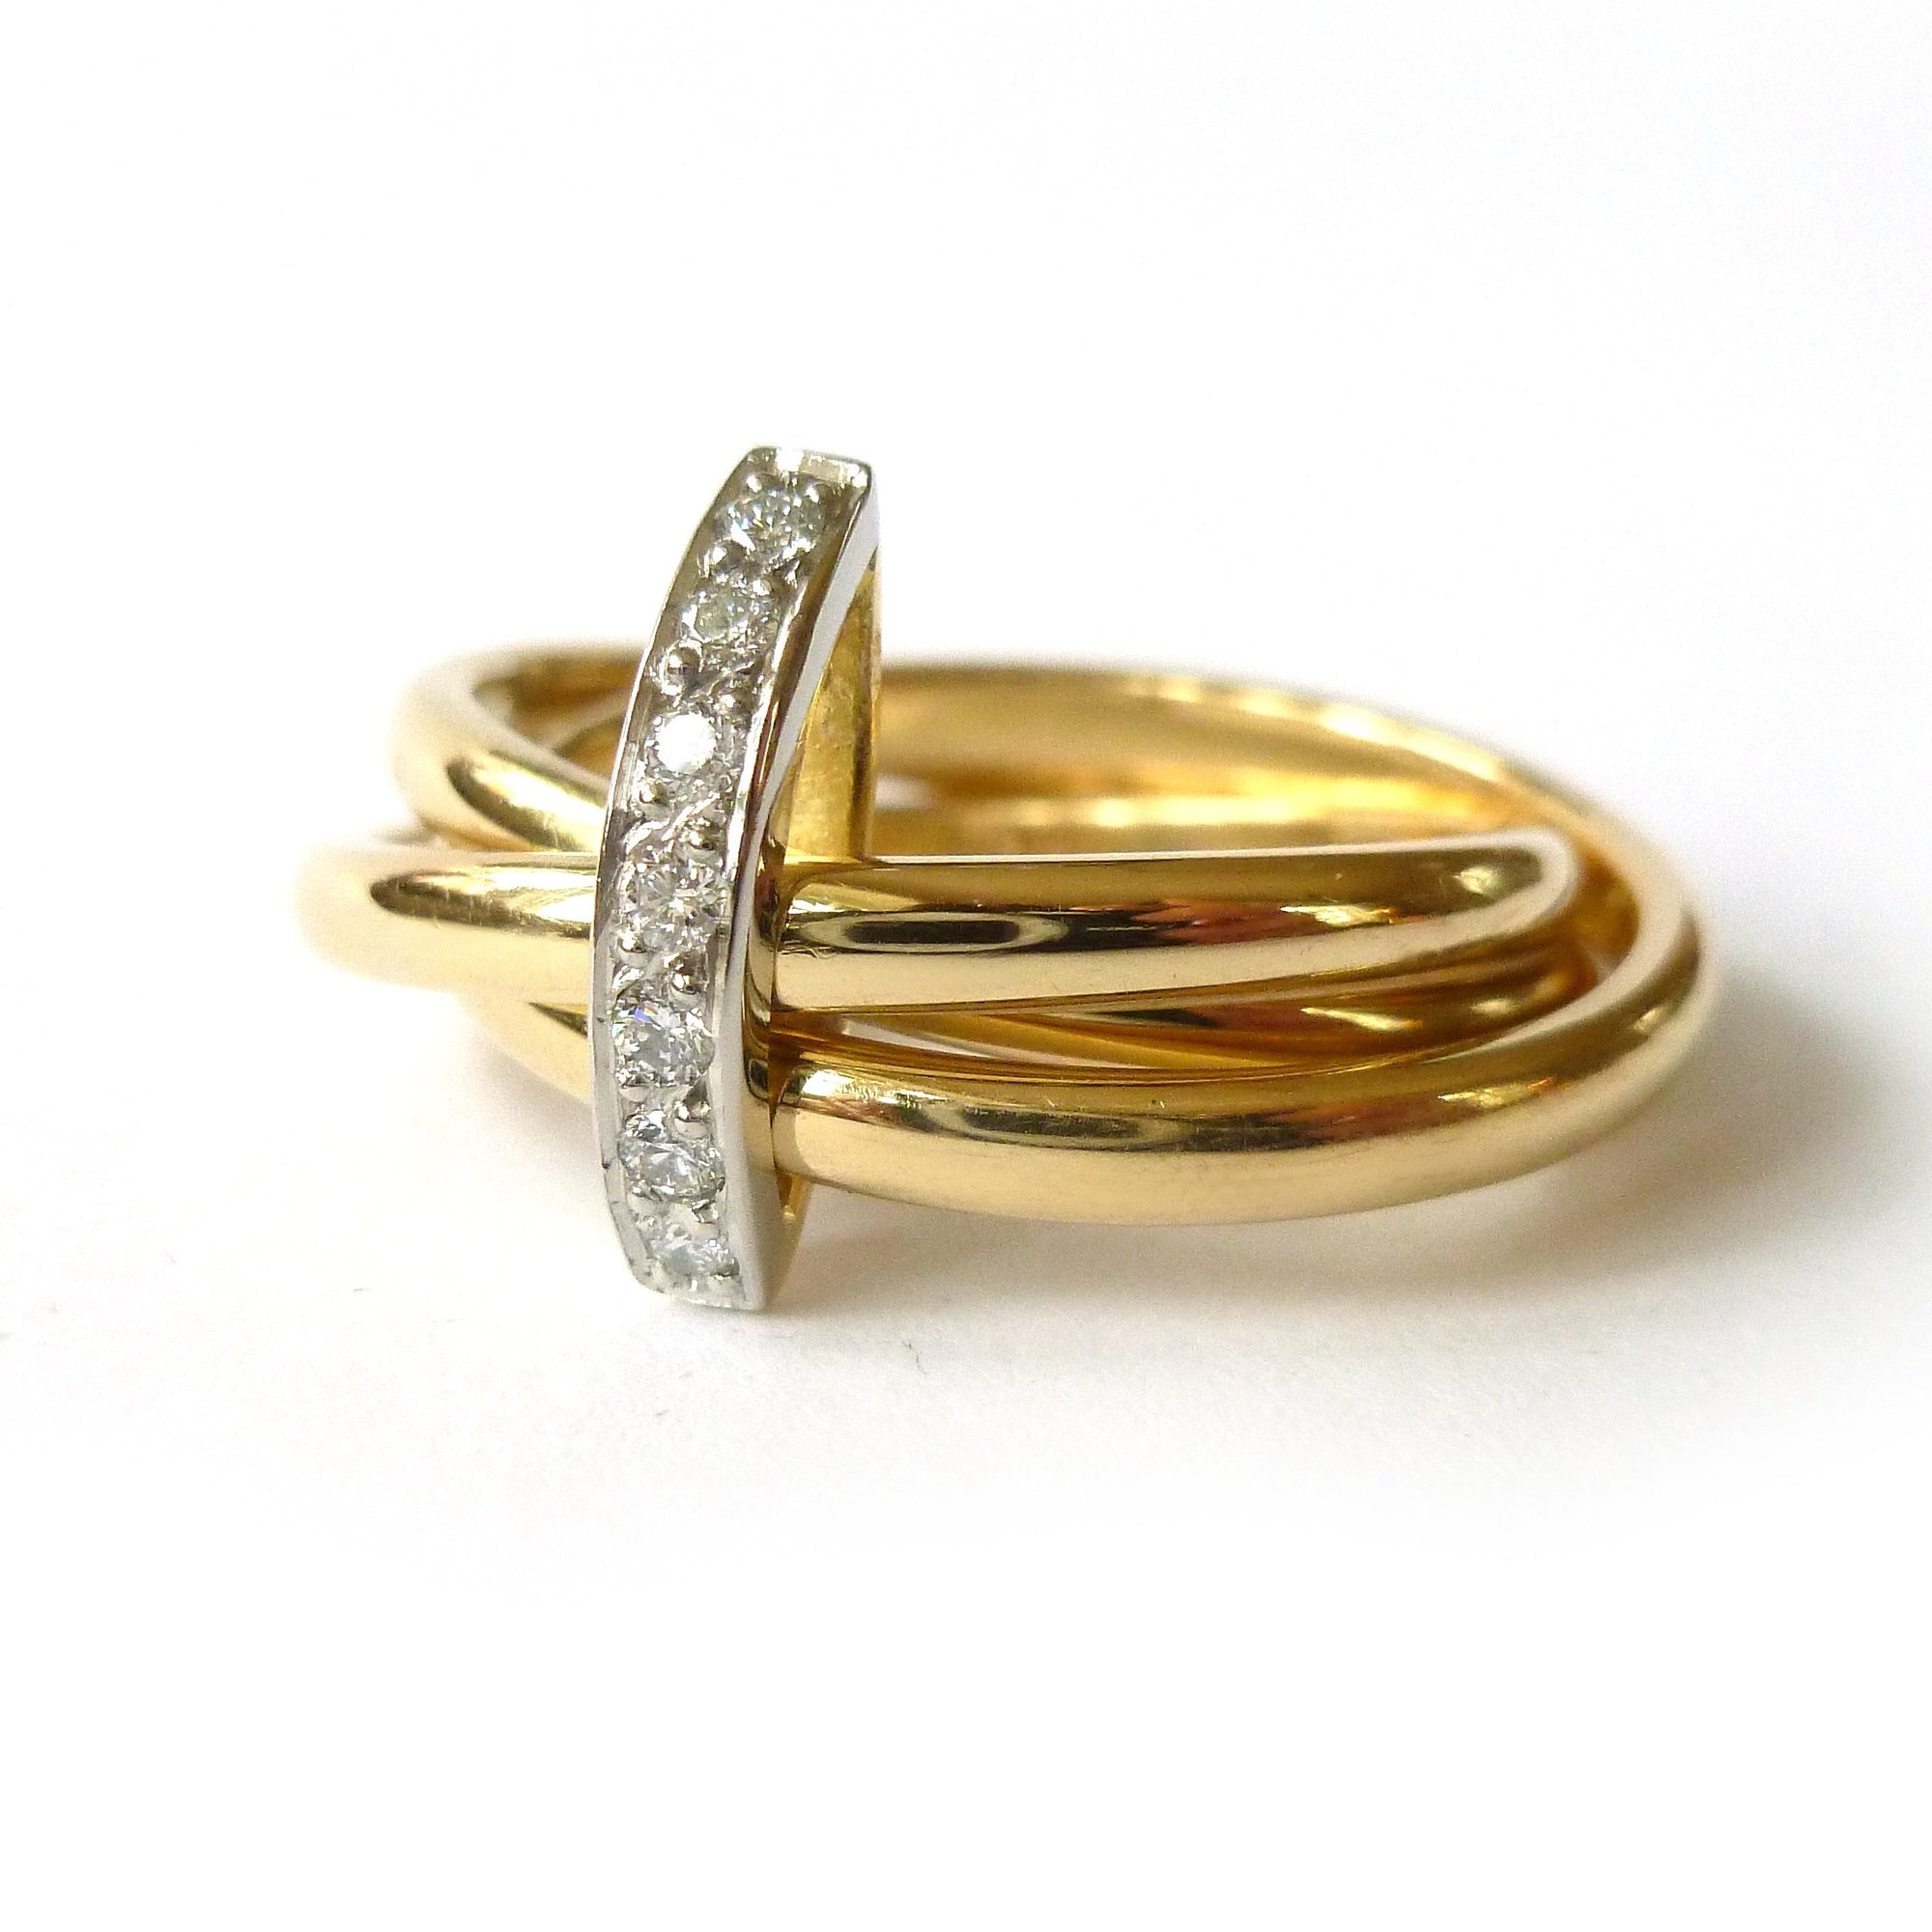 Modern russian ring style design in yellow gold and platinum with white diamonds pave set to join them